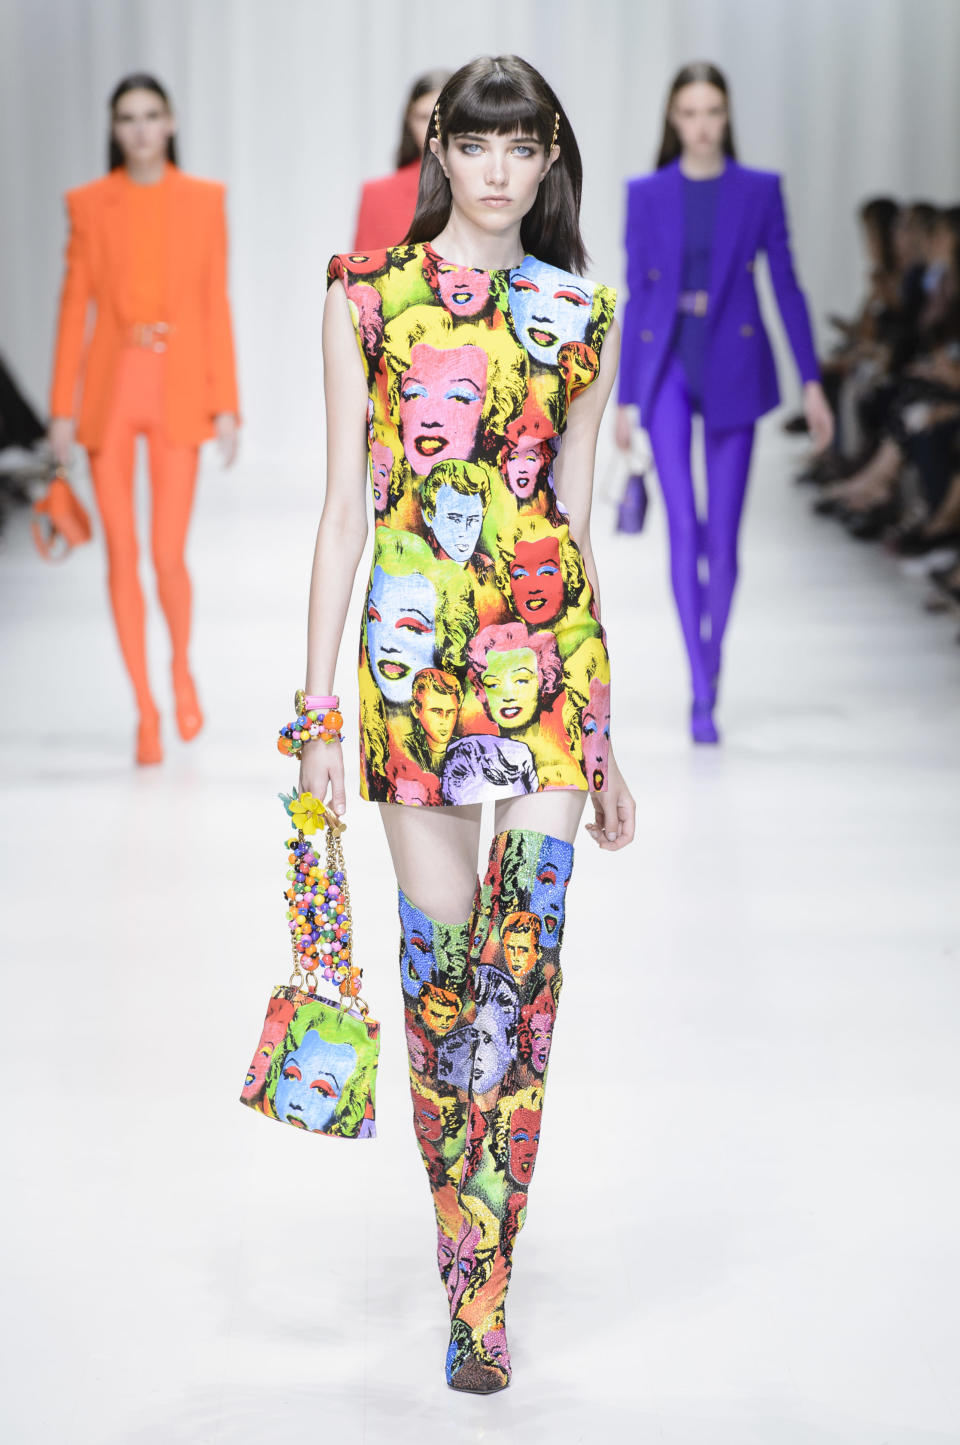 <p><i>Model wears a dress with matching bags and shoes printed with the famous Andy Warhol artwork of Marilyn Monroe from the SS18 Versace collection. This looks is an ode to when Gianni Versace first introduced the Warholian looks in 1993. (Photo: ImaxTree) </i></p>